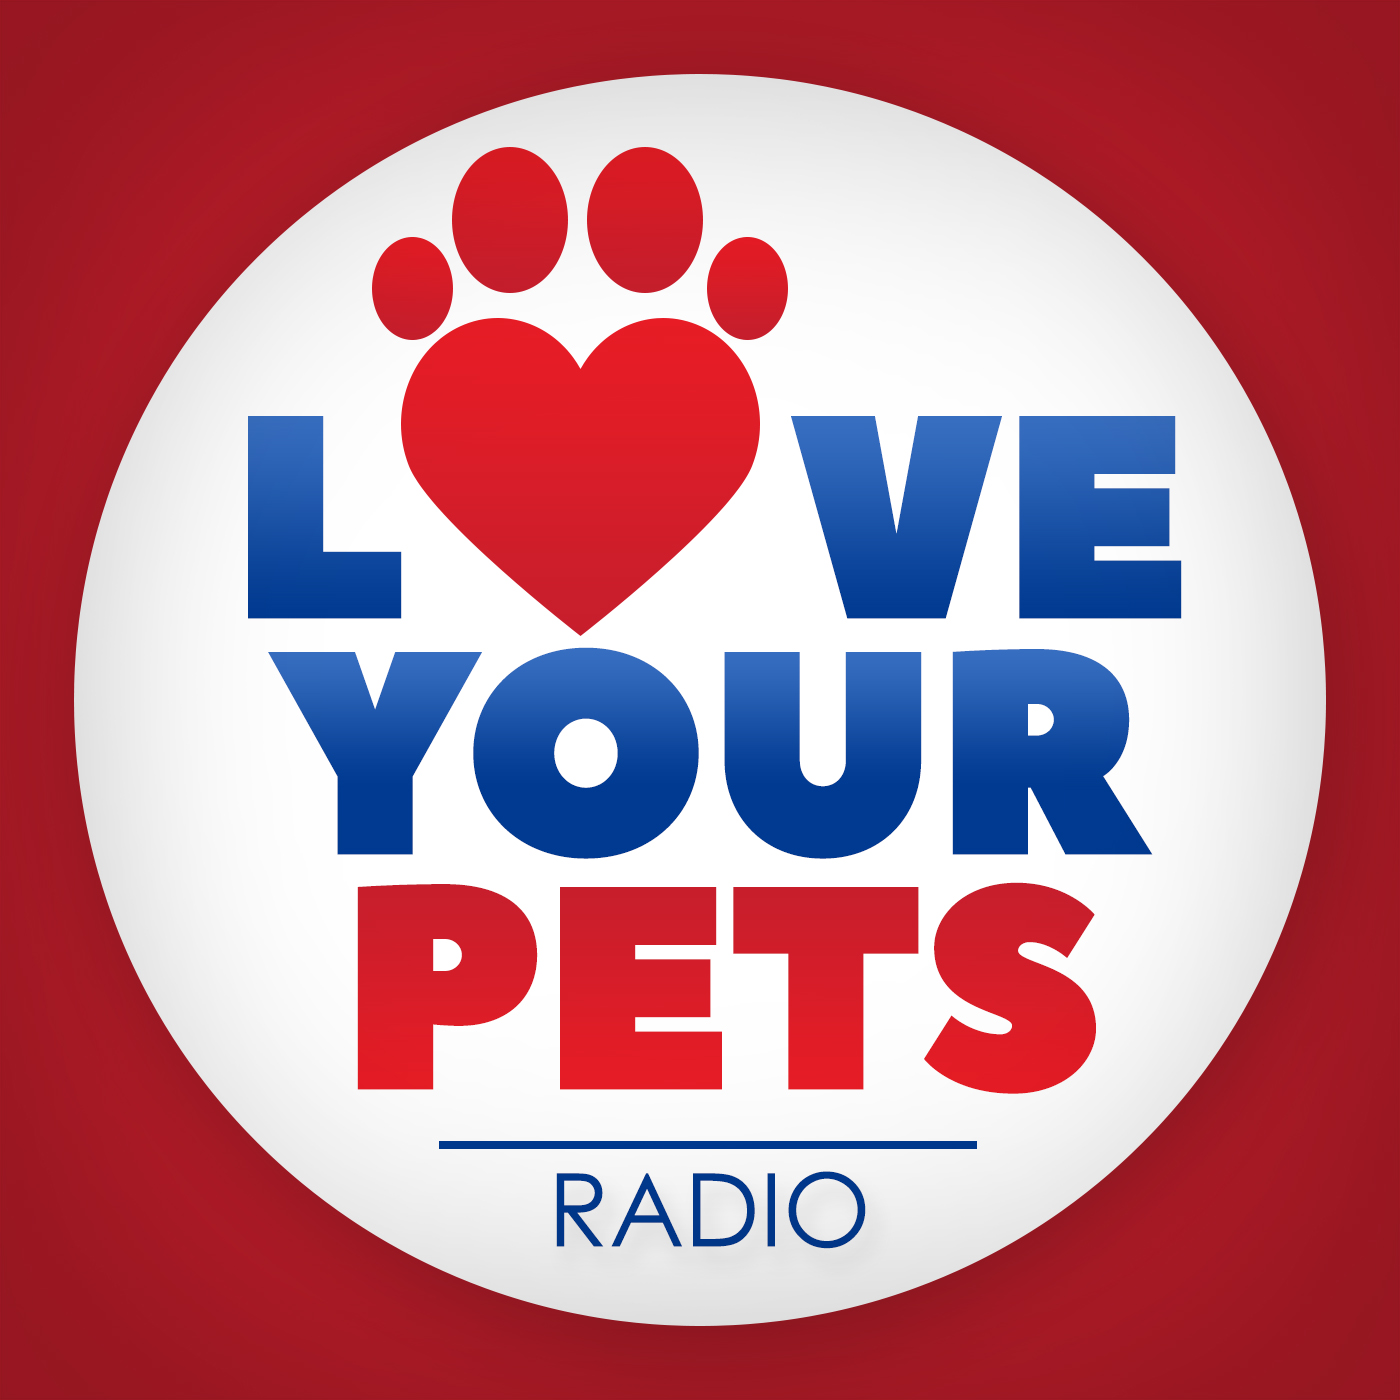 Love Your Pets Radio